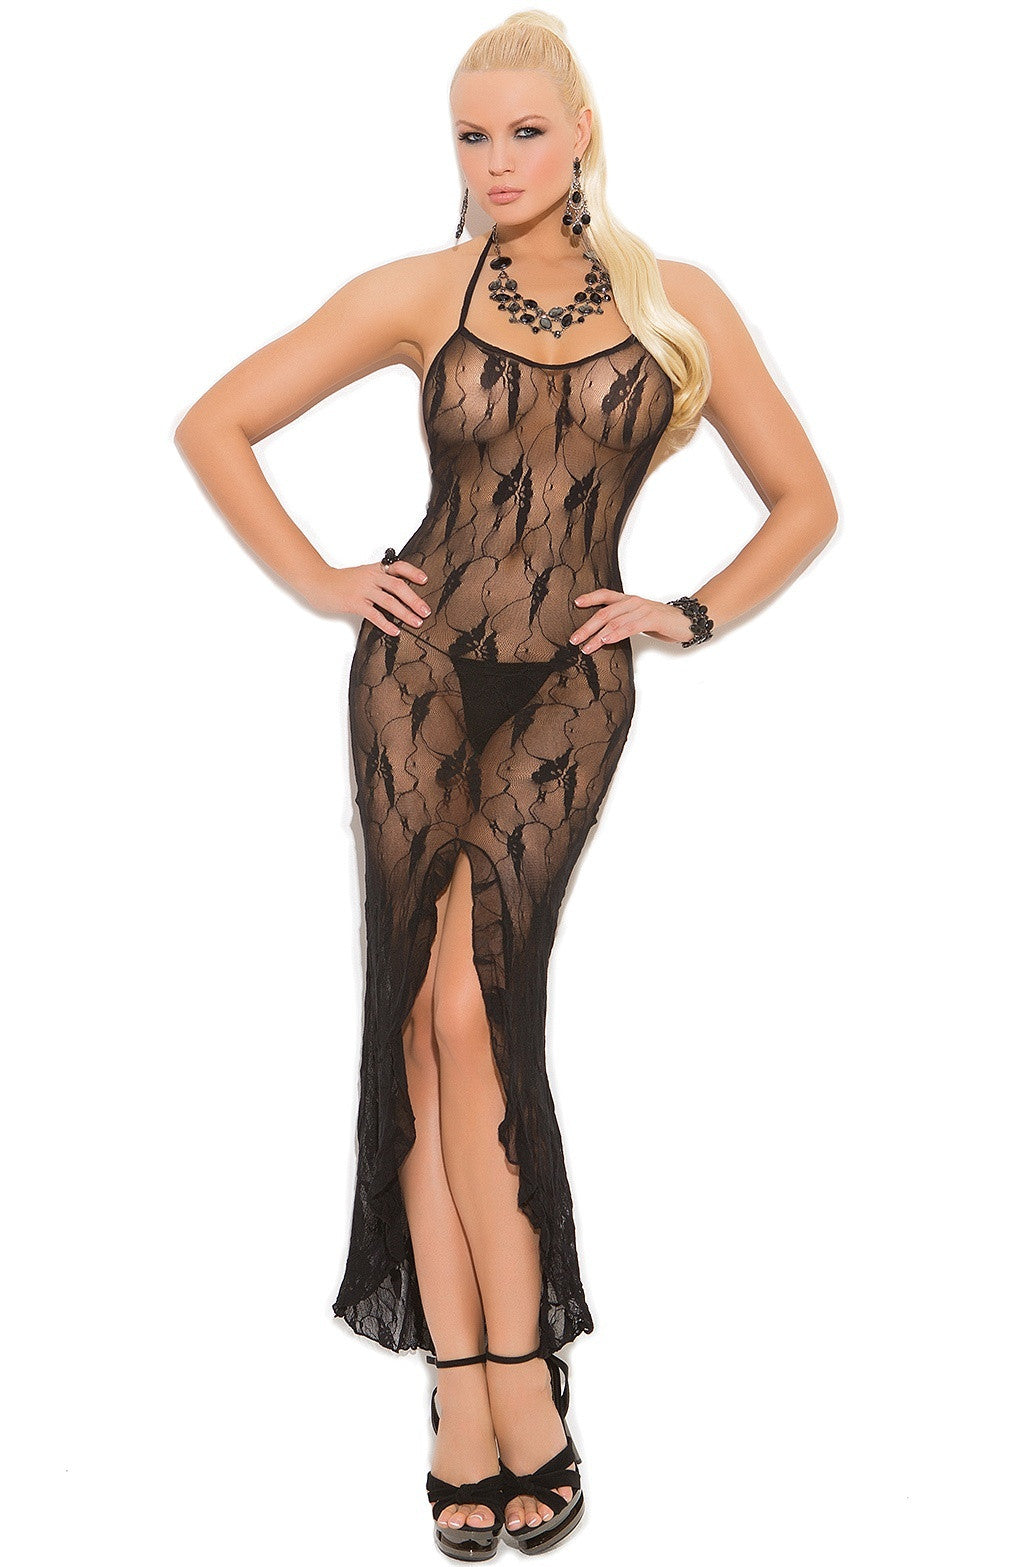 EM-1442 Black Night gown - Sexylingerieland